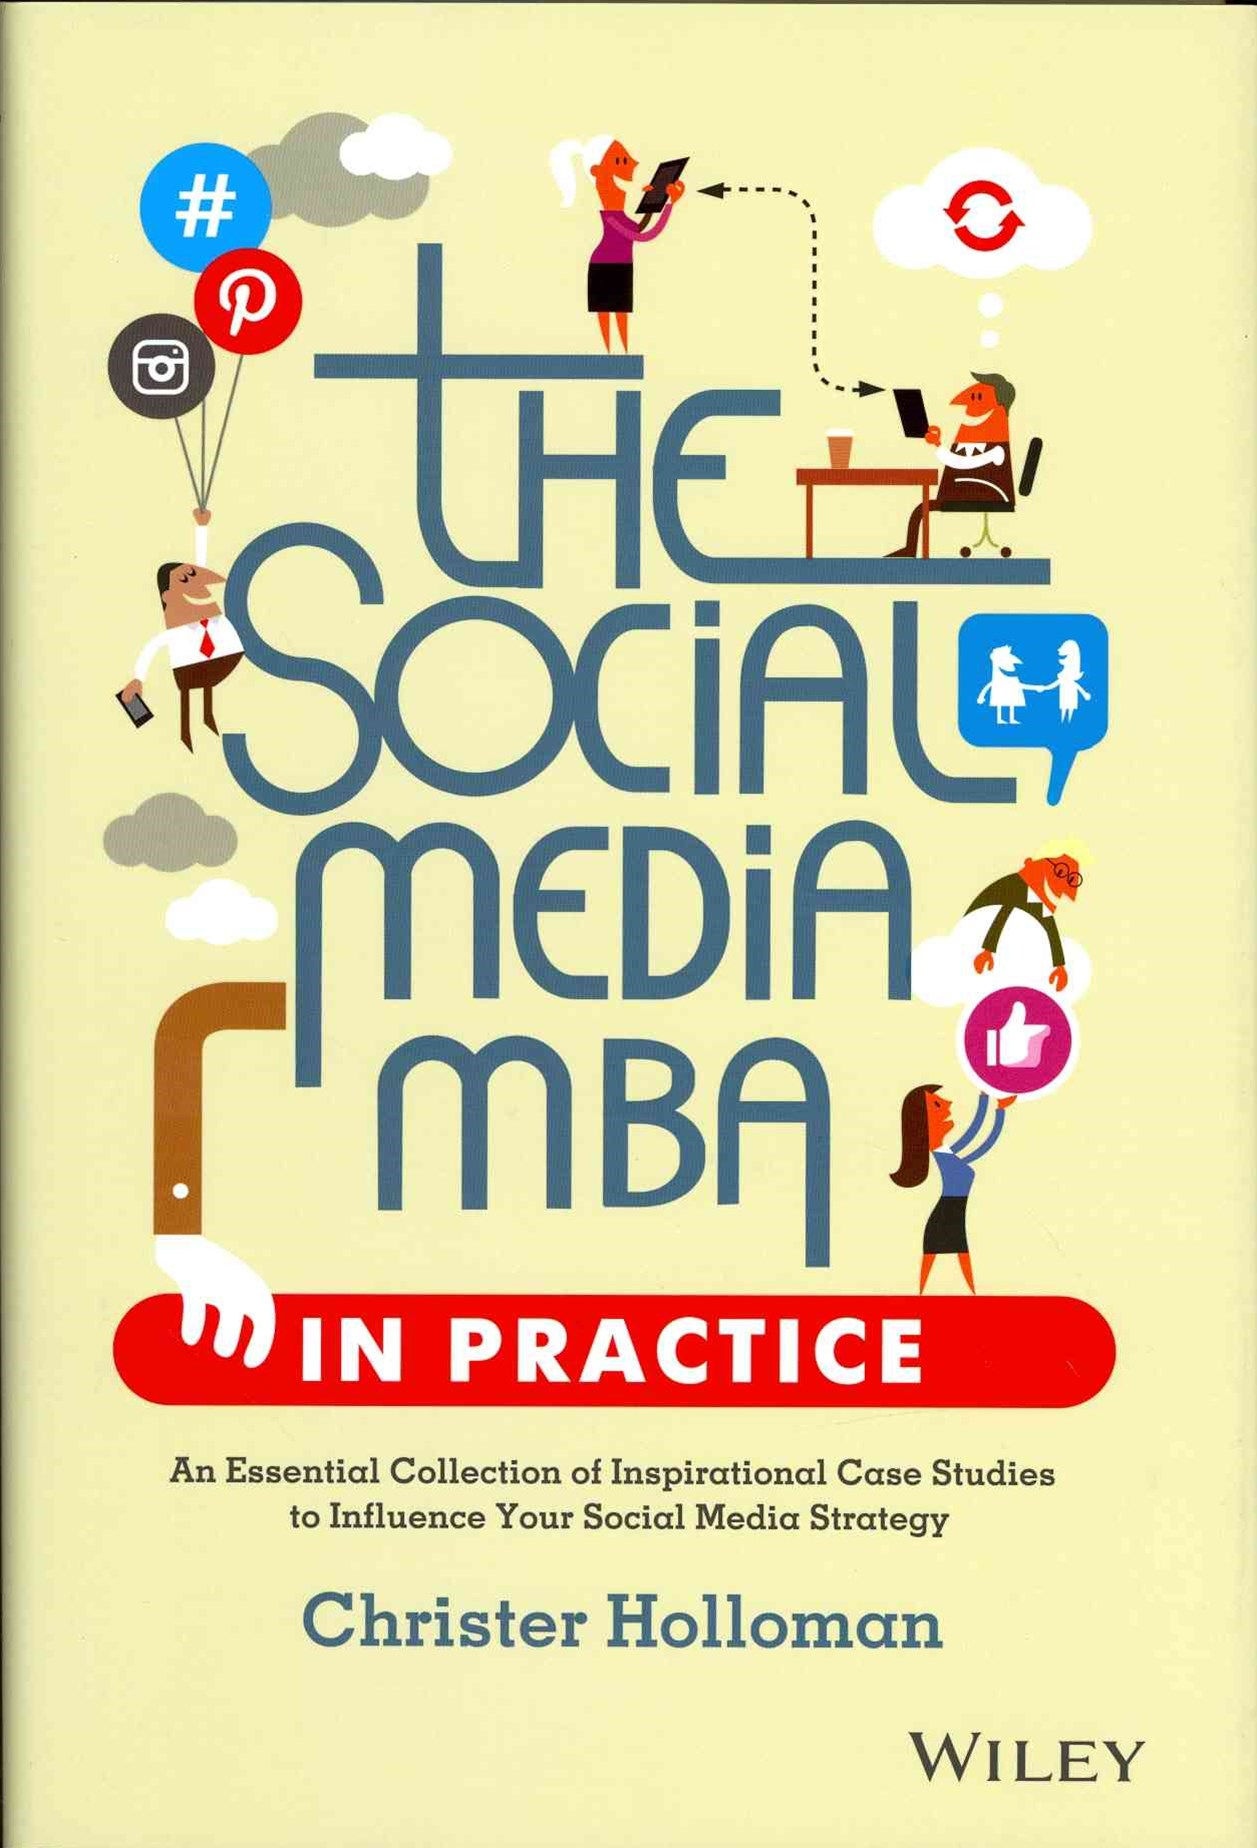 The Social Media MBA in Practice - an Essential   Collection of Inspirational Case Studies to       Influence Your Social Media Strategy